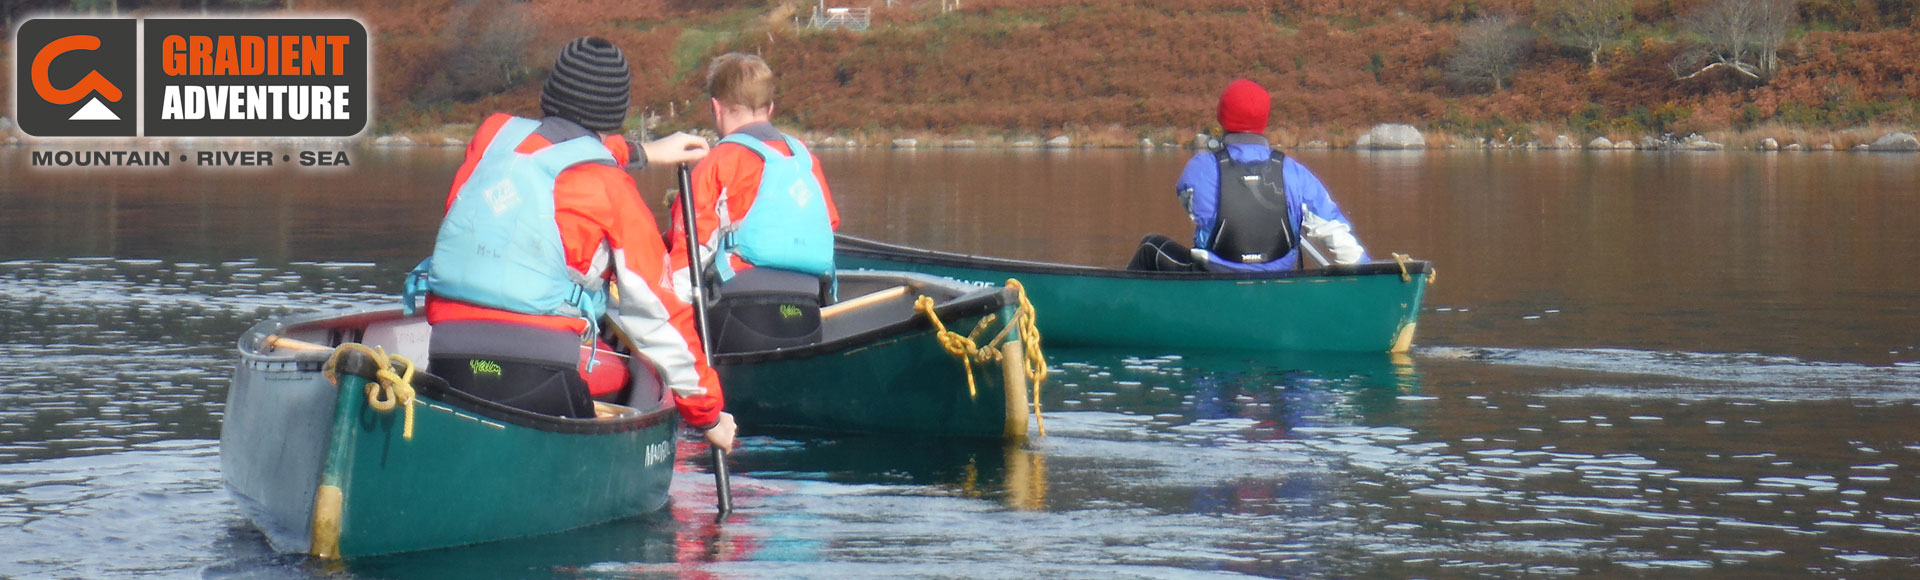 Introductory Canoe Course